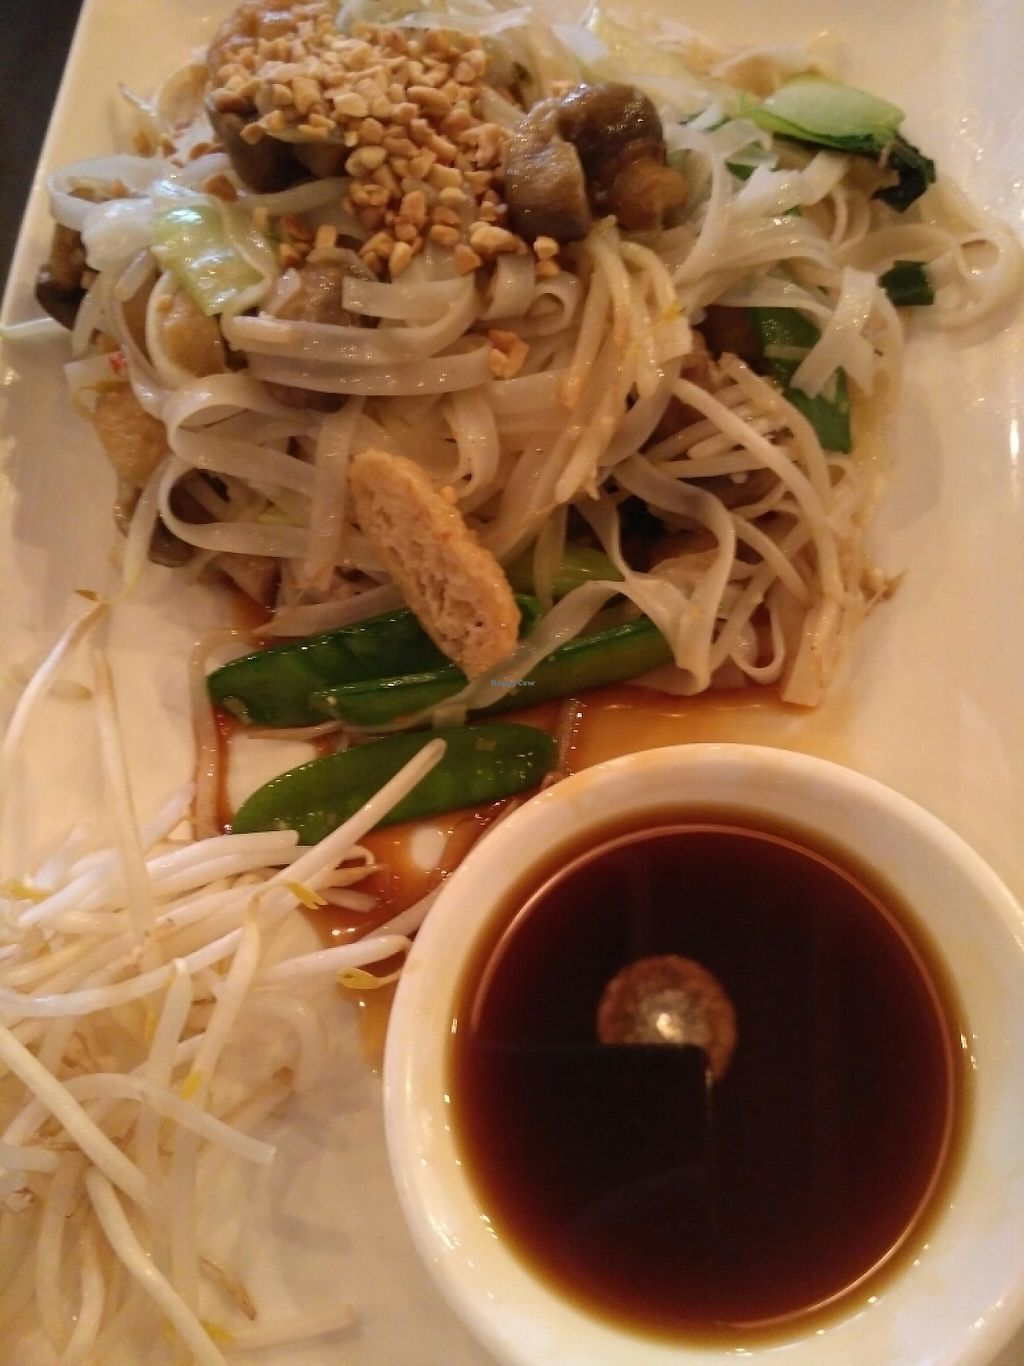 """Photo of Pho  by <a href=""""/members/profile/Miggi"""">Miggi</a> <br/>Noodles with tofu and mushrooms <br/> May 20, 2017  - <a href='/contact/abuse/image/78137/260601'>Report</a>"""